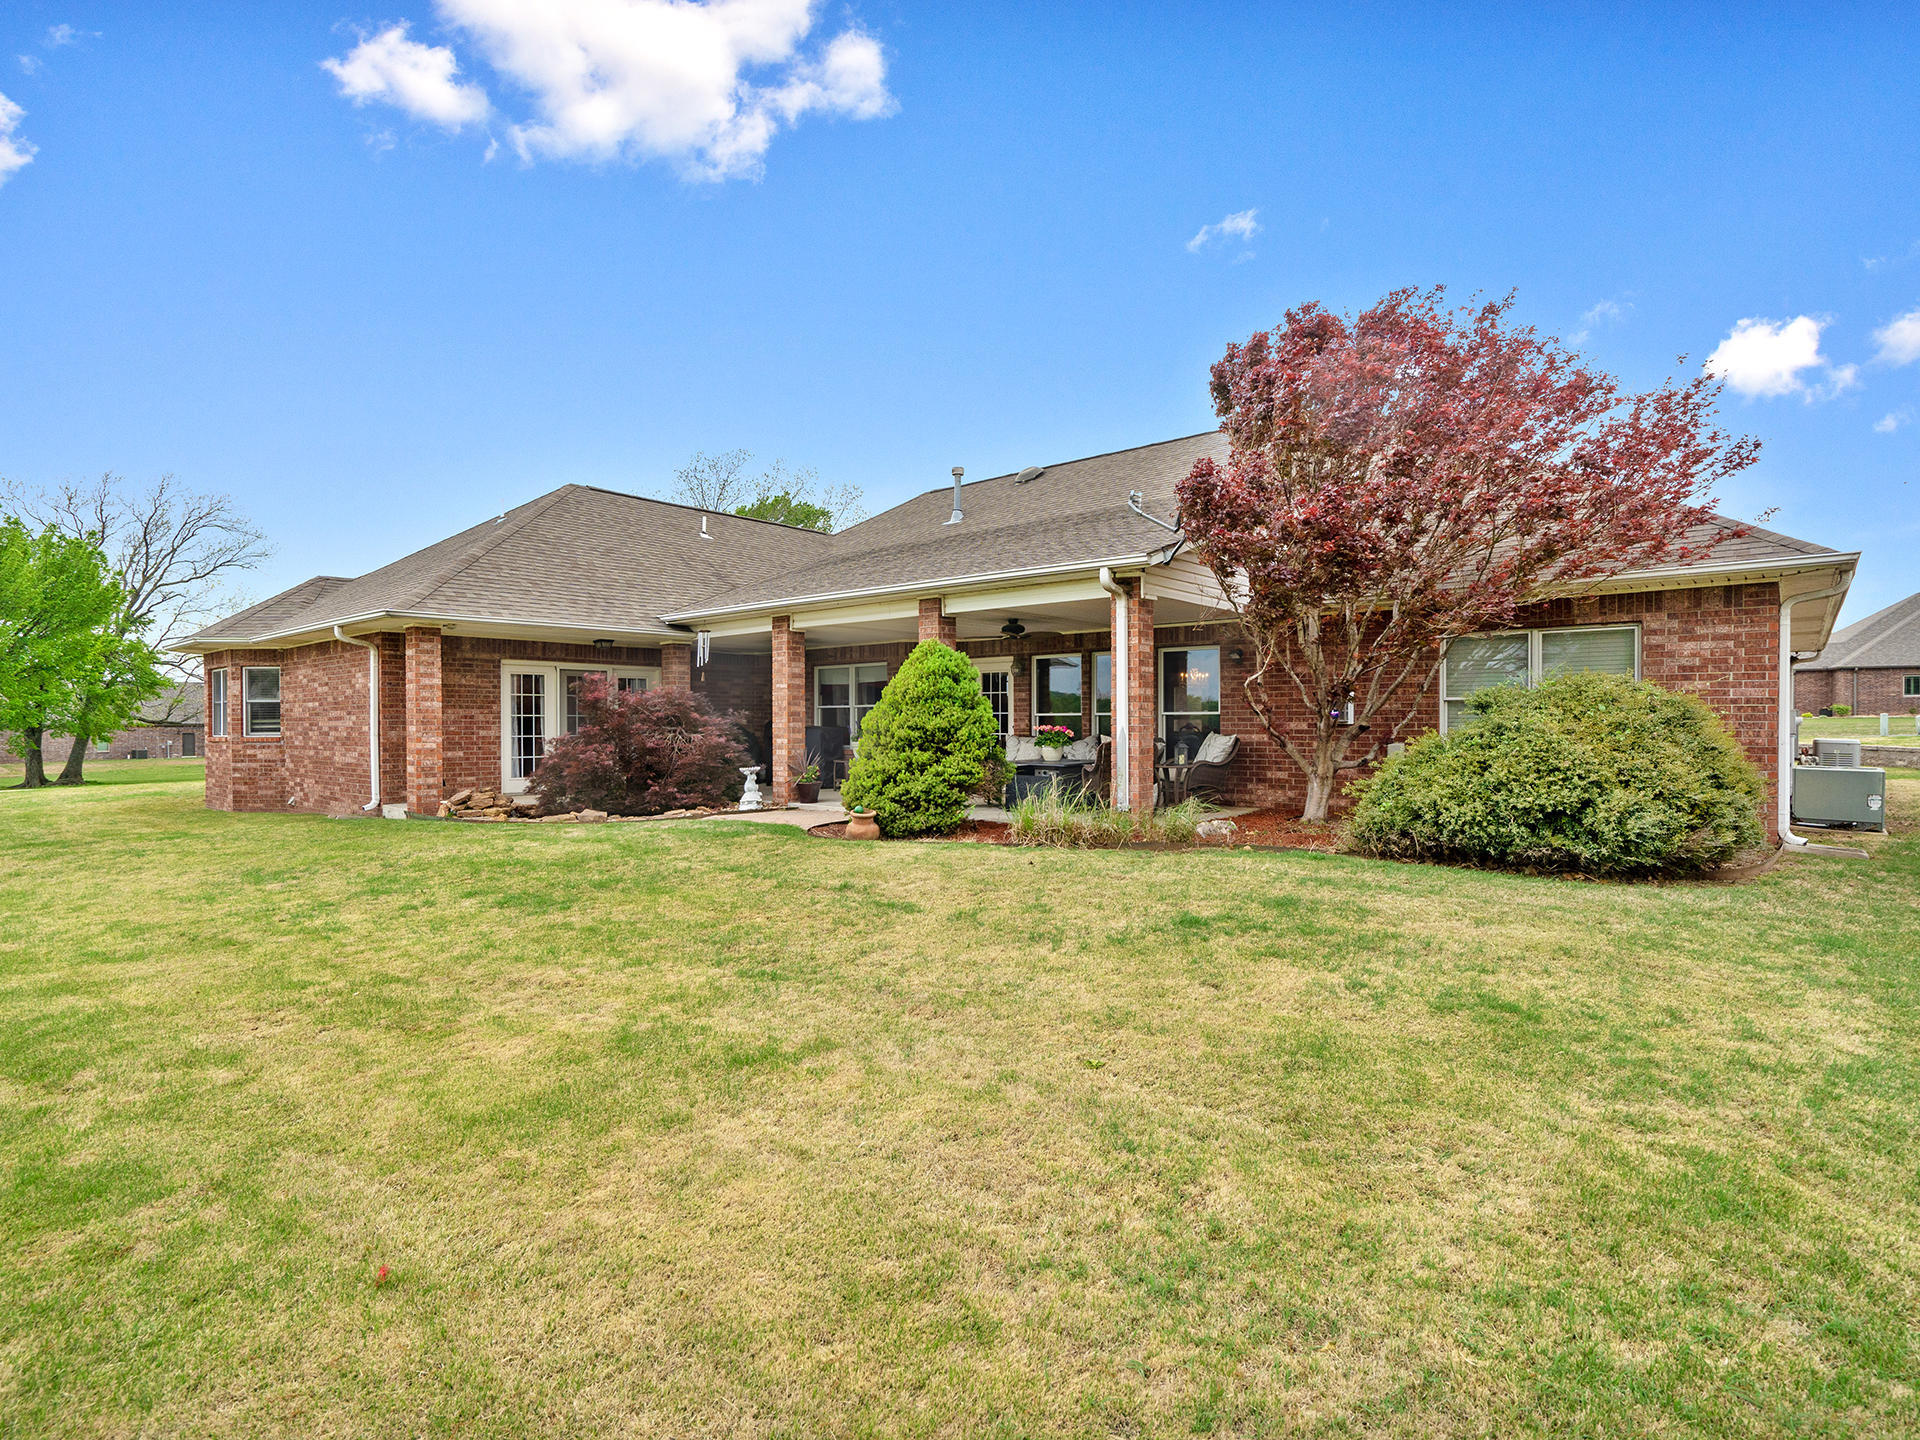 Closed | 25 Twin Creeks Lane Pryor, OK 74361 25